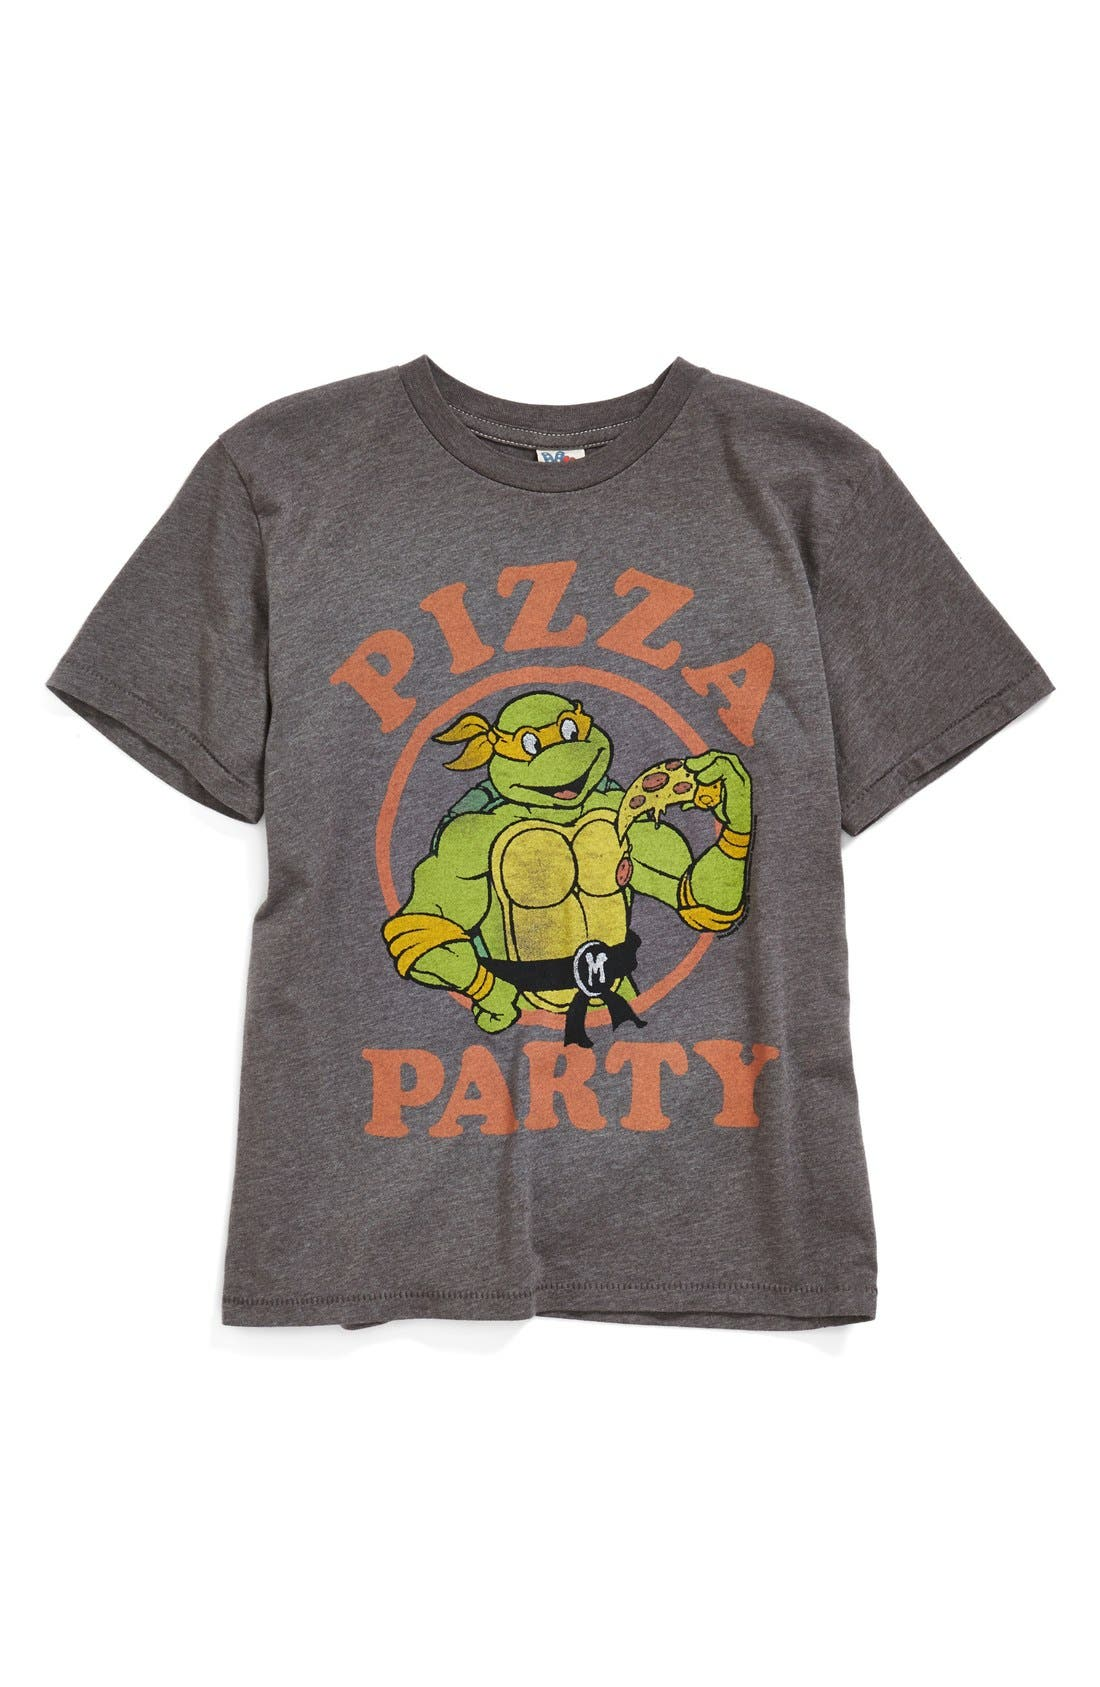 Alternate Image 1 Selected - Junk Food 'Teenage Mutant Ninja Turtles - Pizza Party' Graphic T-Shirt (Toddler Boys & Little Boys)